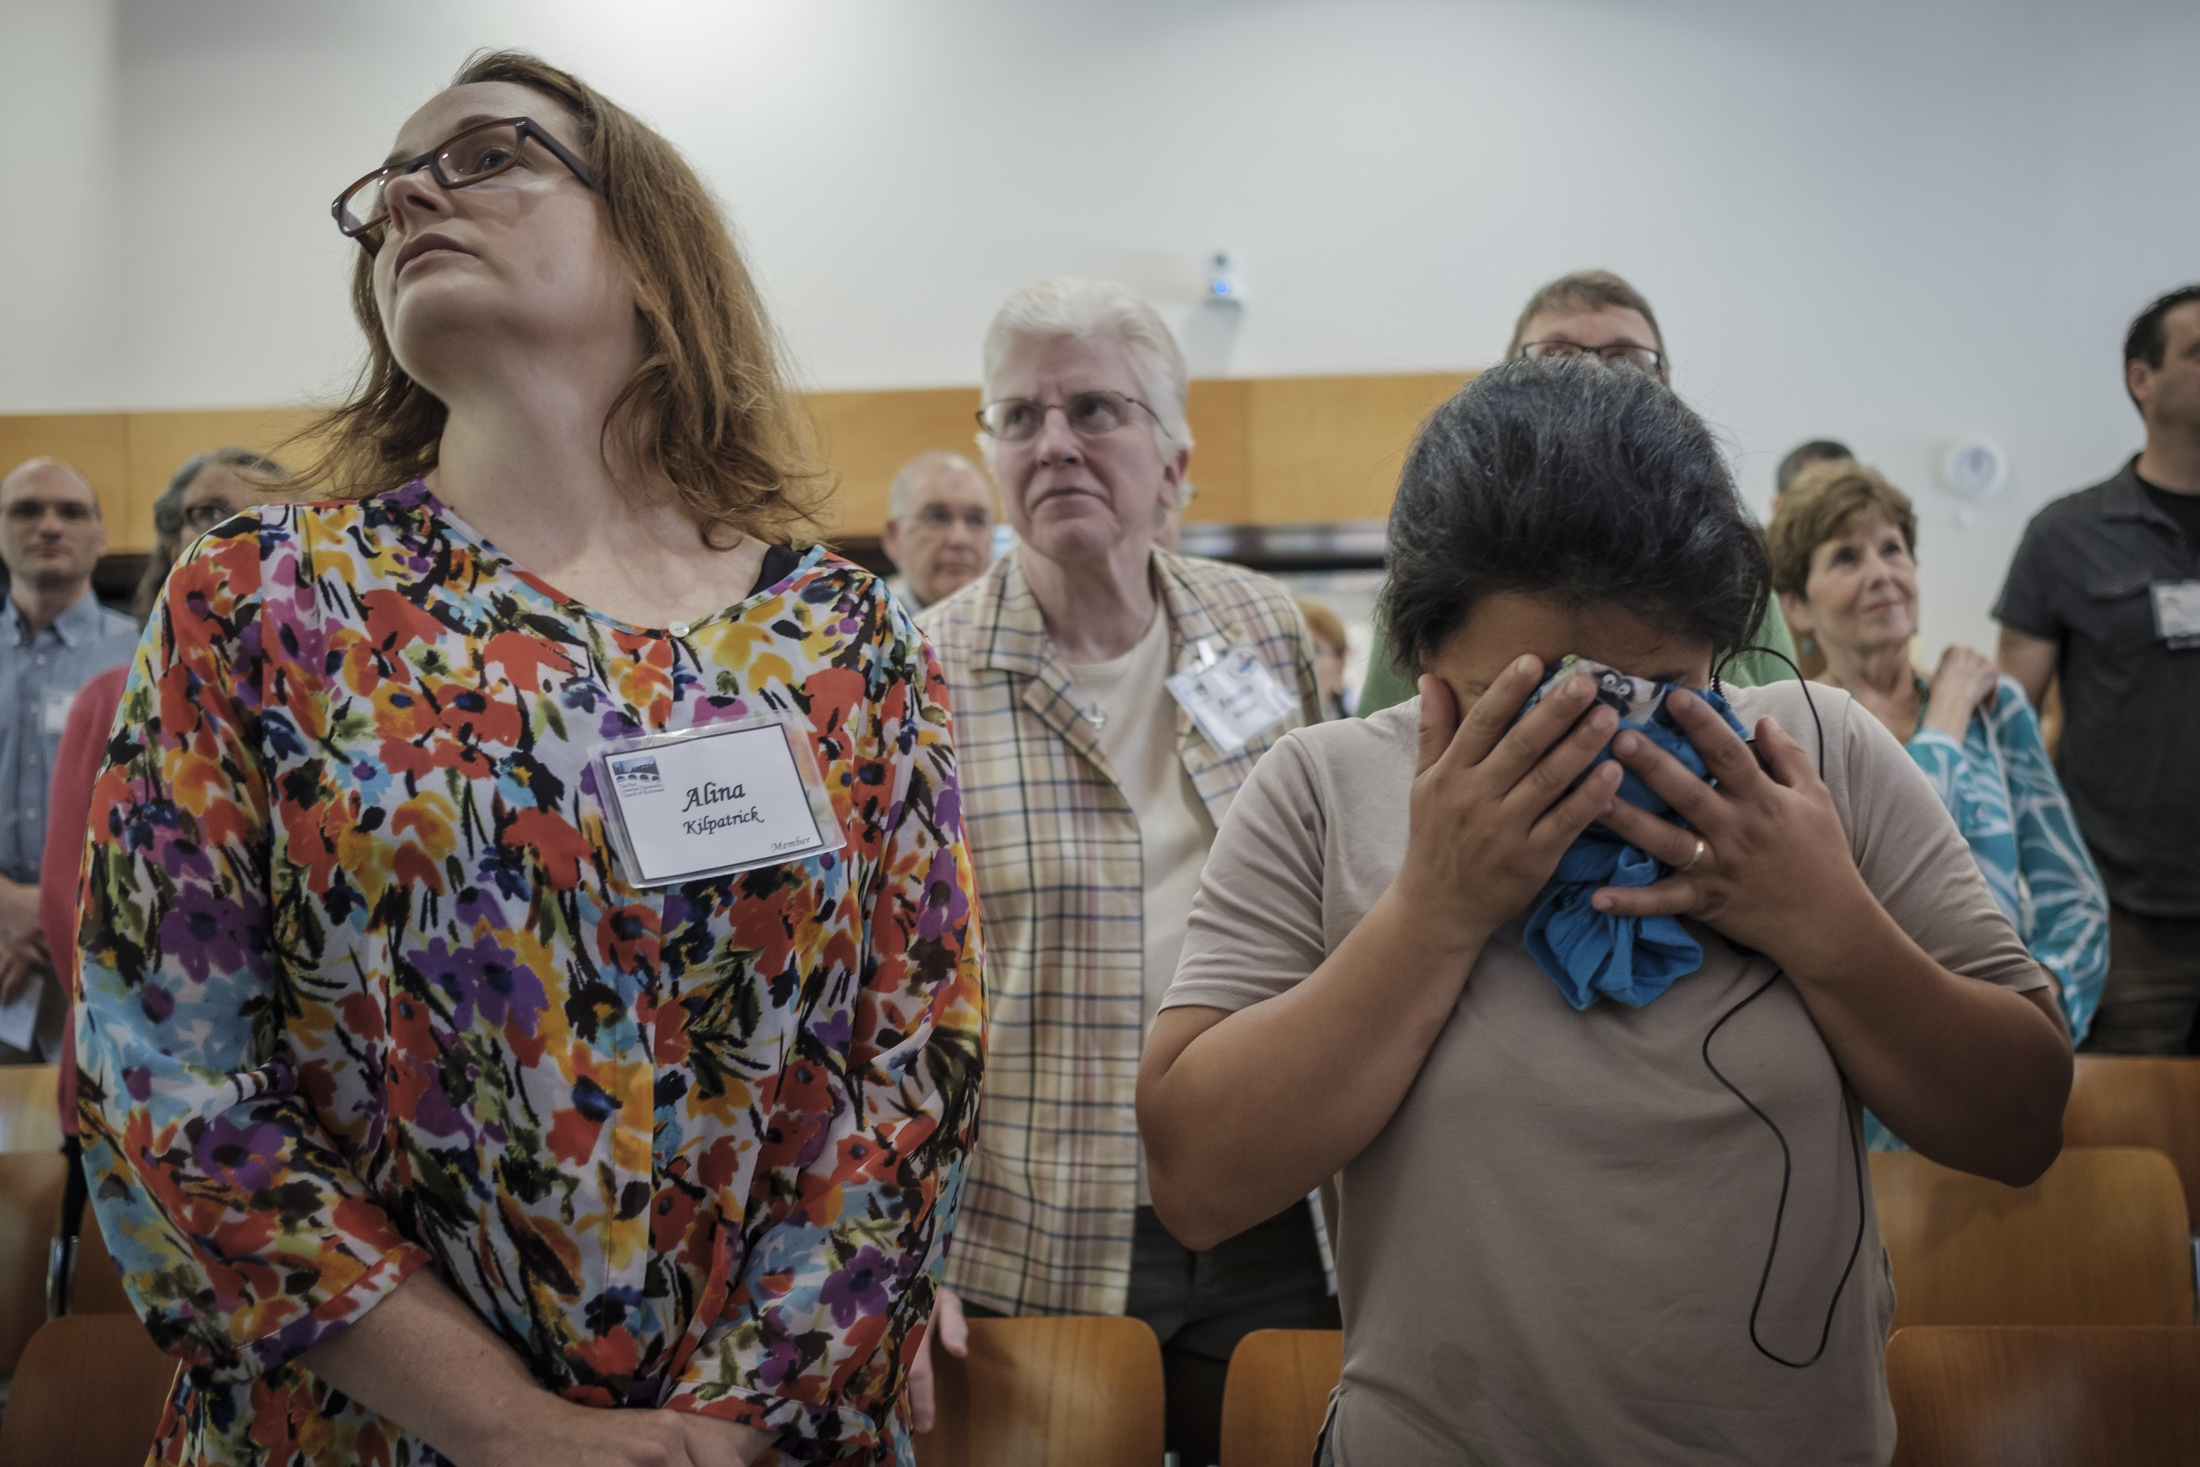 (Left to right) Immigration lawyer Alina Kilpatrick and Abbie Arevalo-Herrera during an emotional moment in the midst of Sunday service at the First Unitarian Universalist Church.